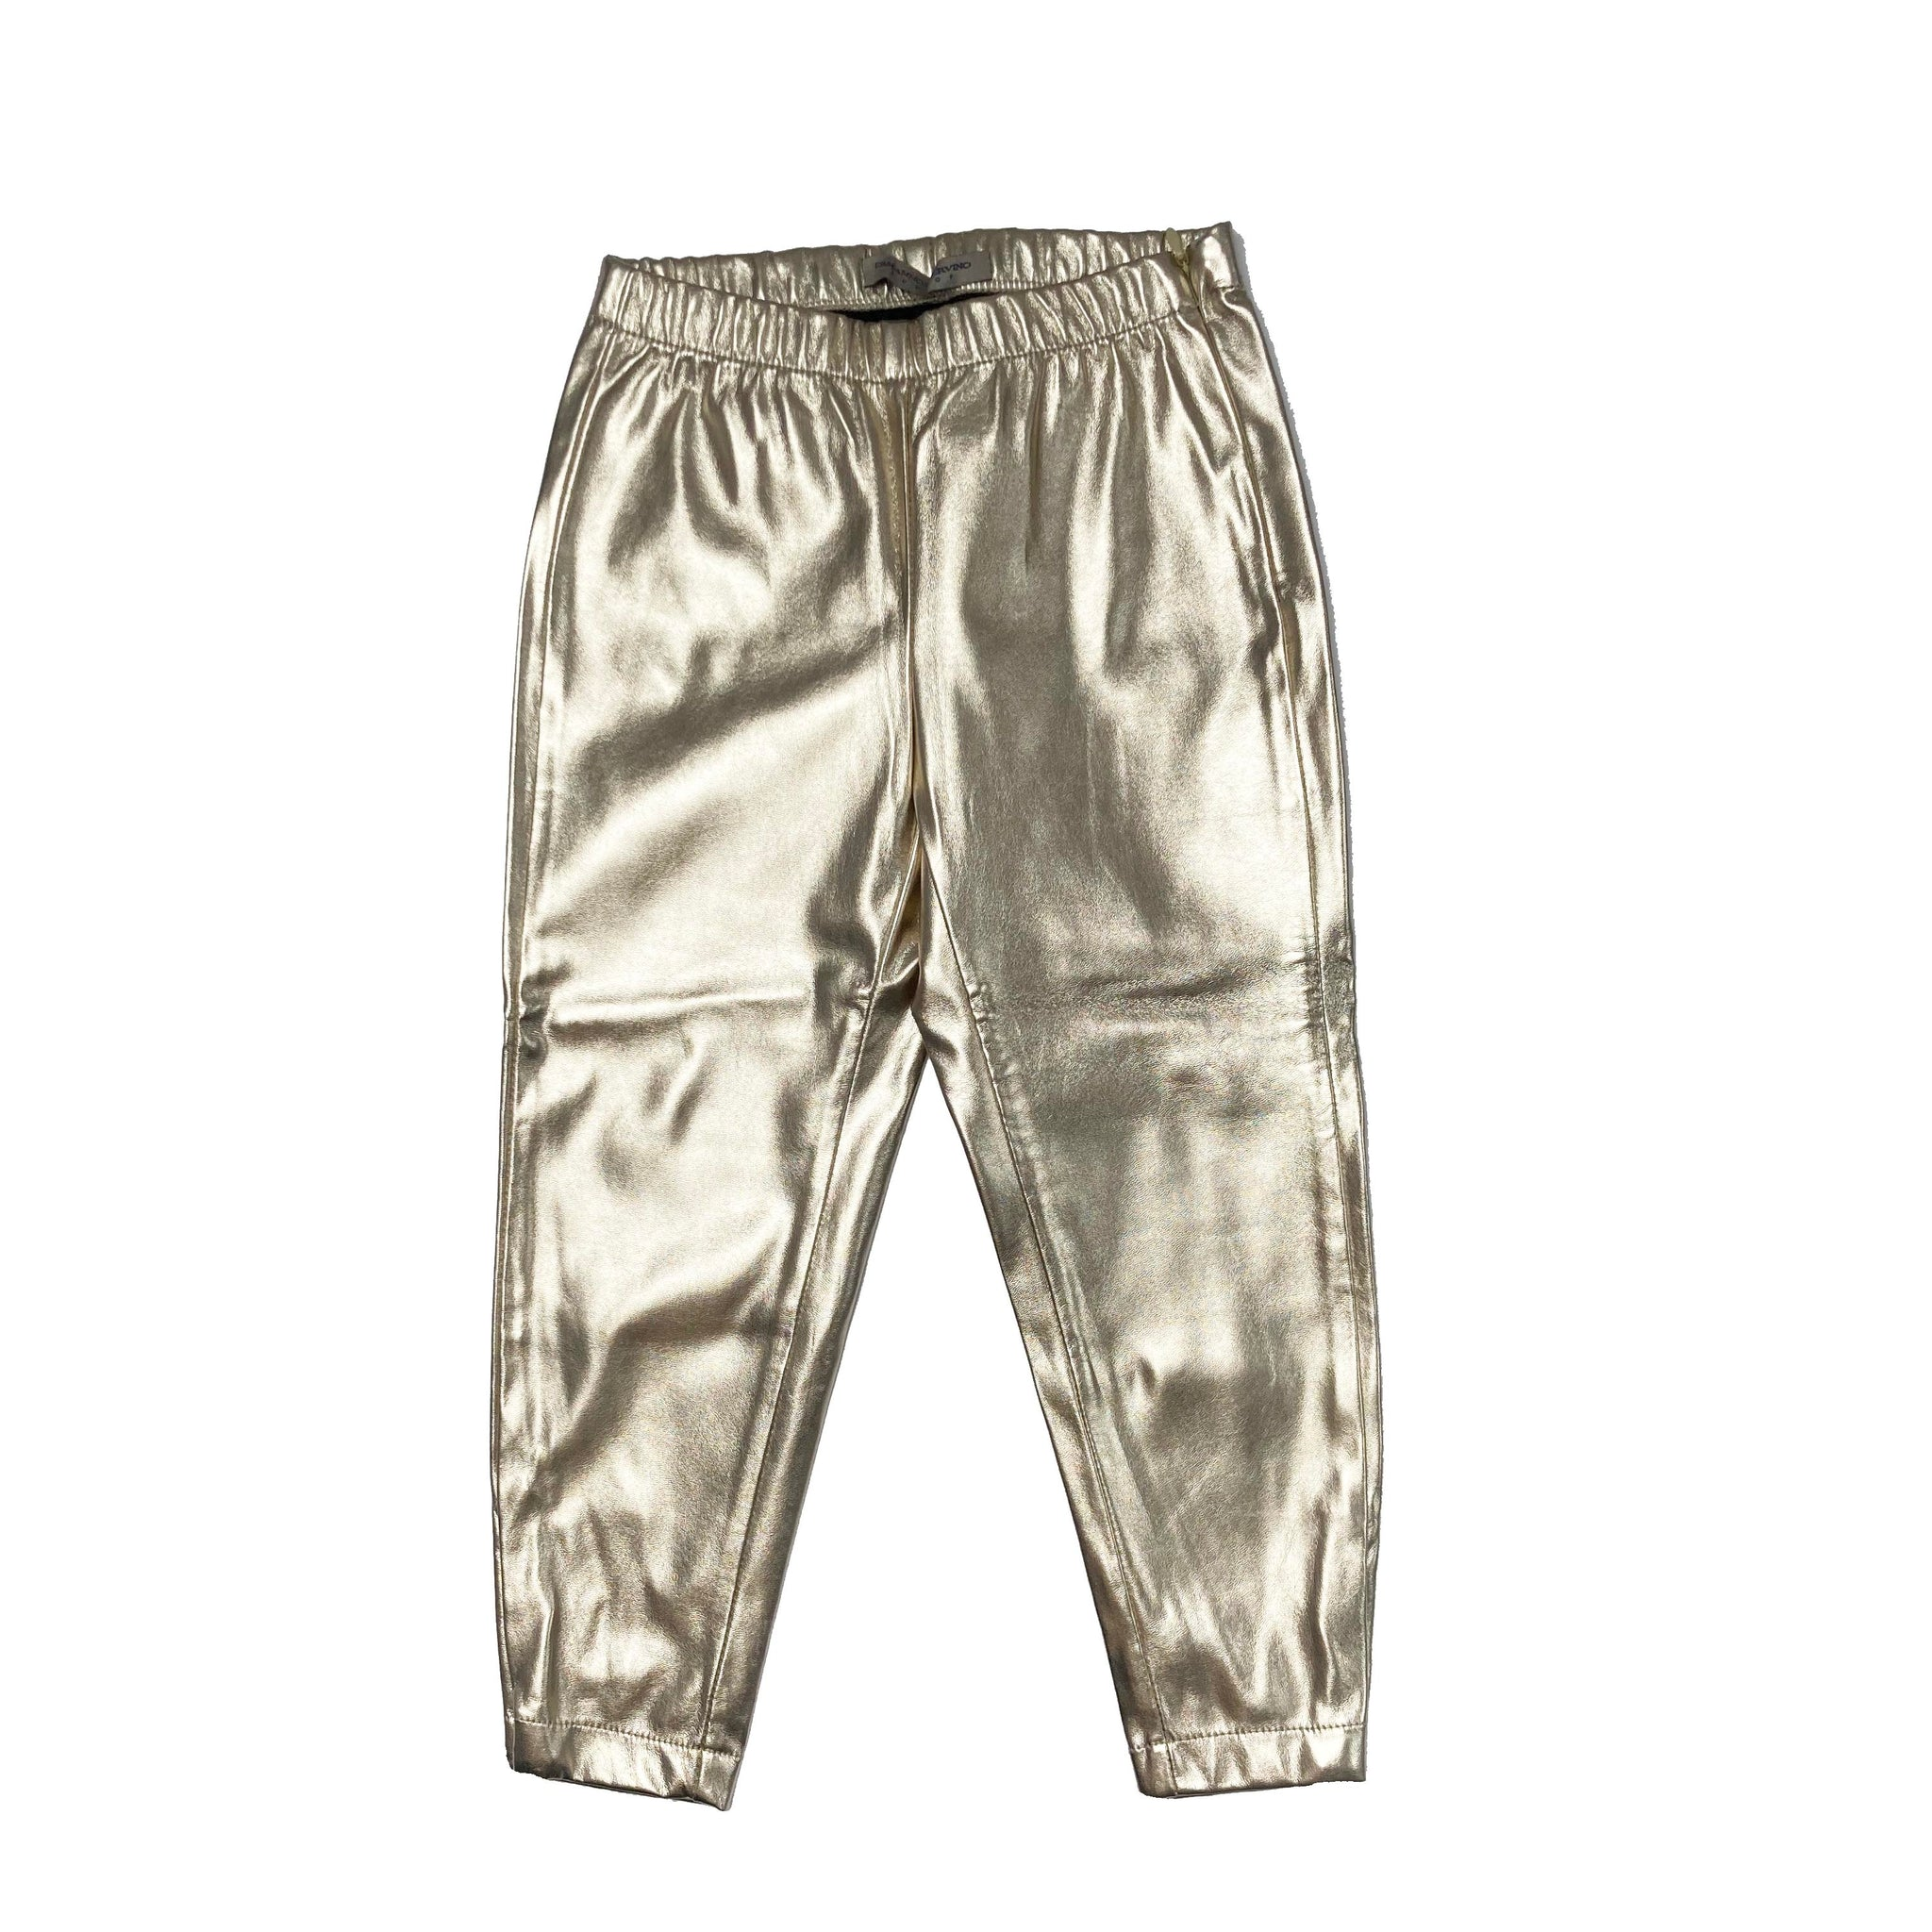 ERMANNO SCERVINO PLEATHER GOLD TROUSERS 4 YEARS